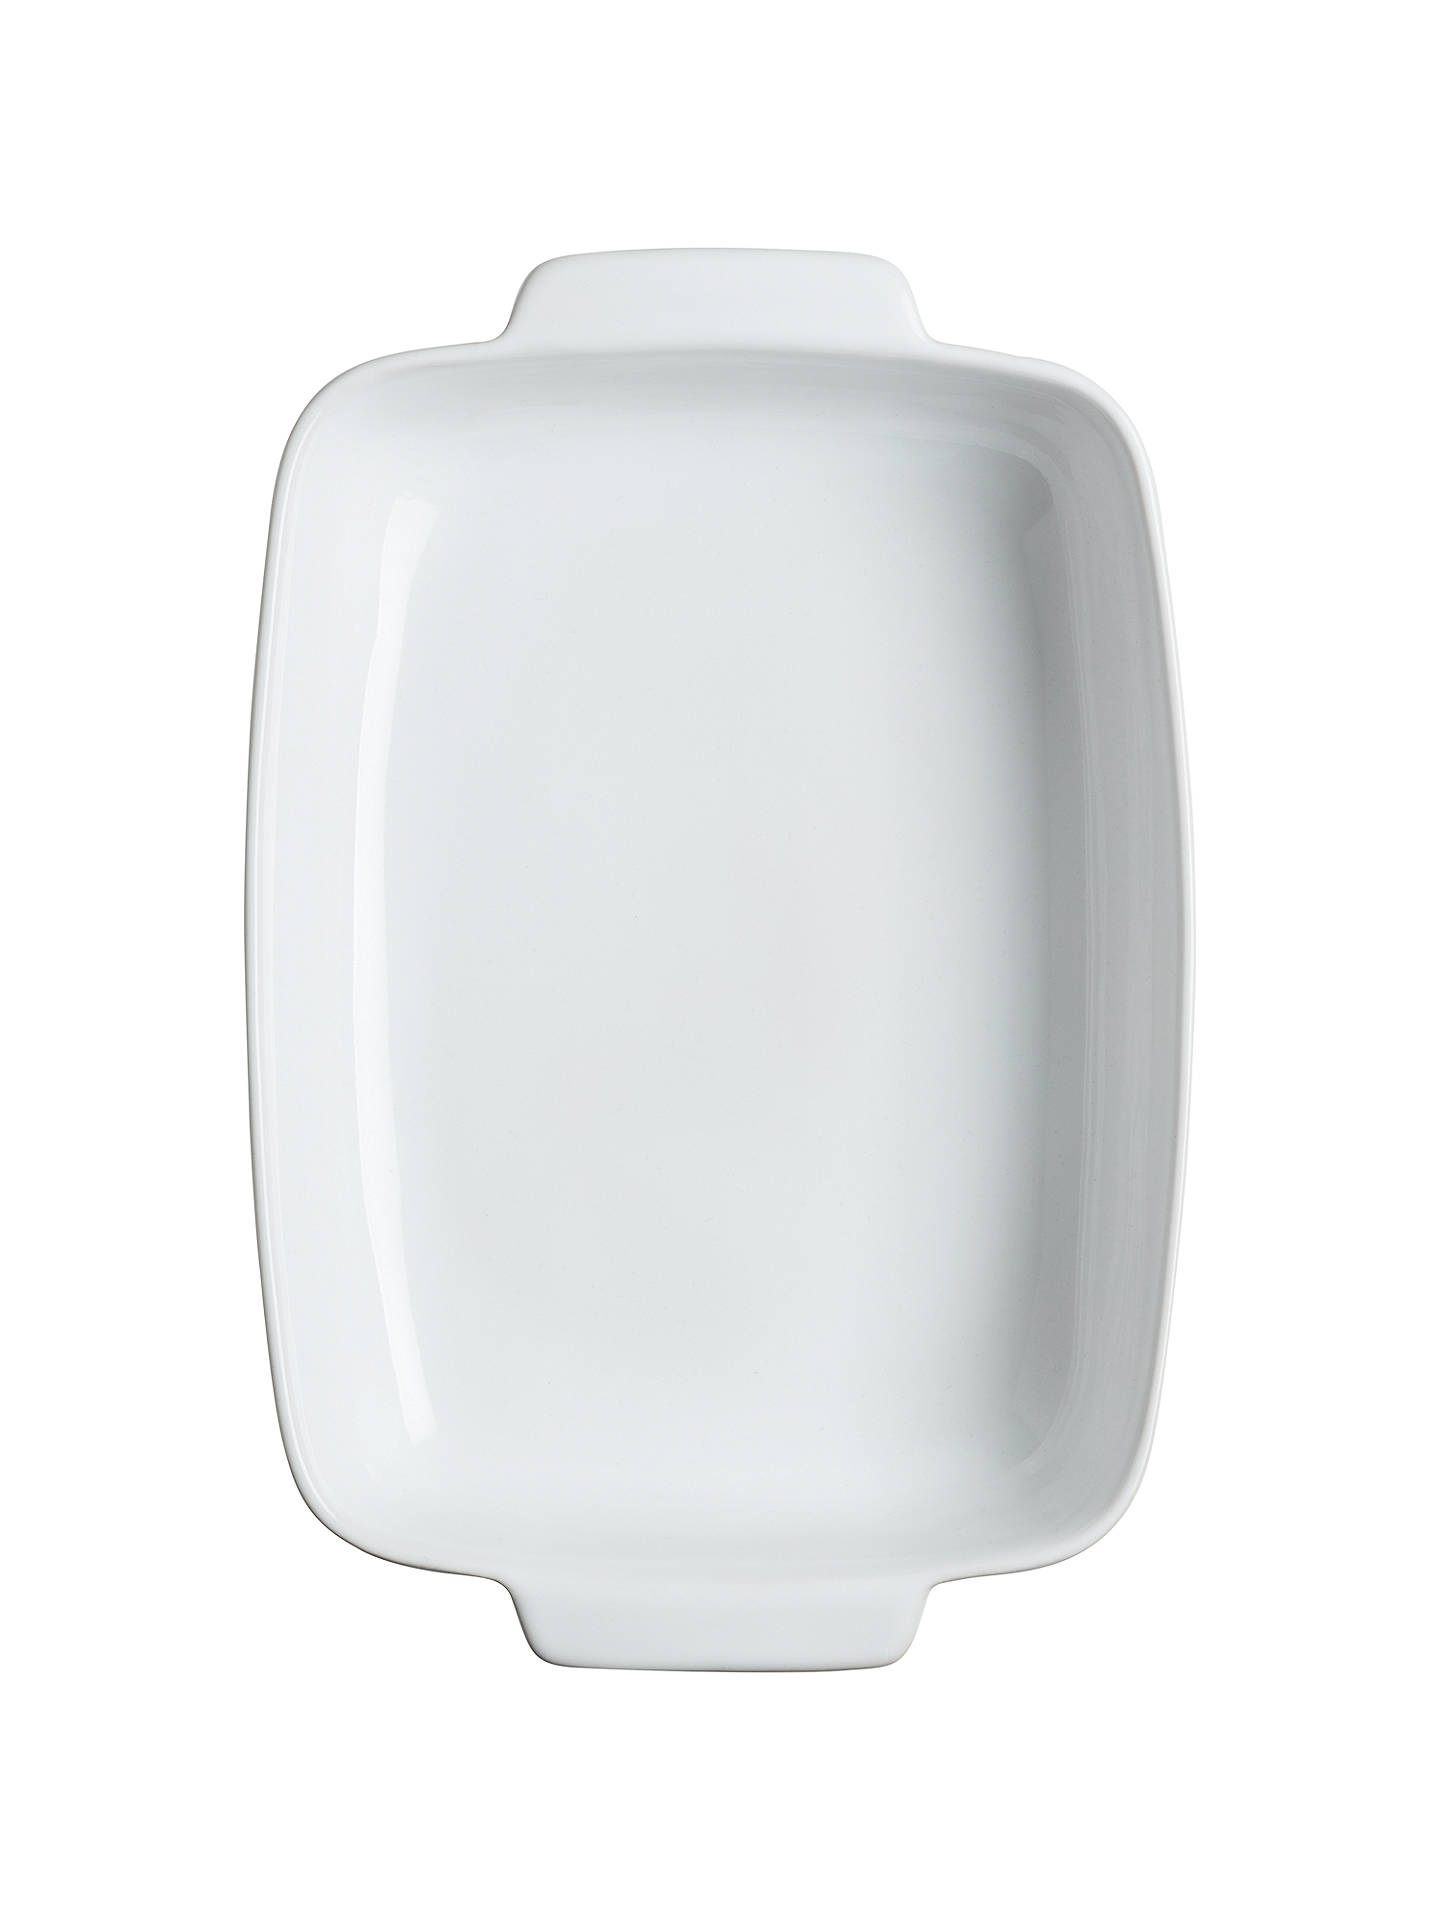 Buy Pyrex Signature Ceramic Rectangular Roaster Oven Dish, White, L35 x W25cm Online at johnlewis.com